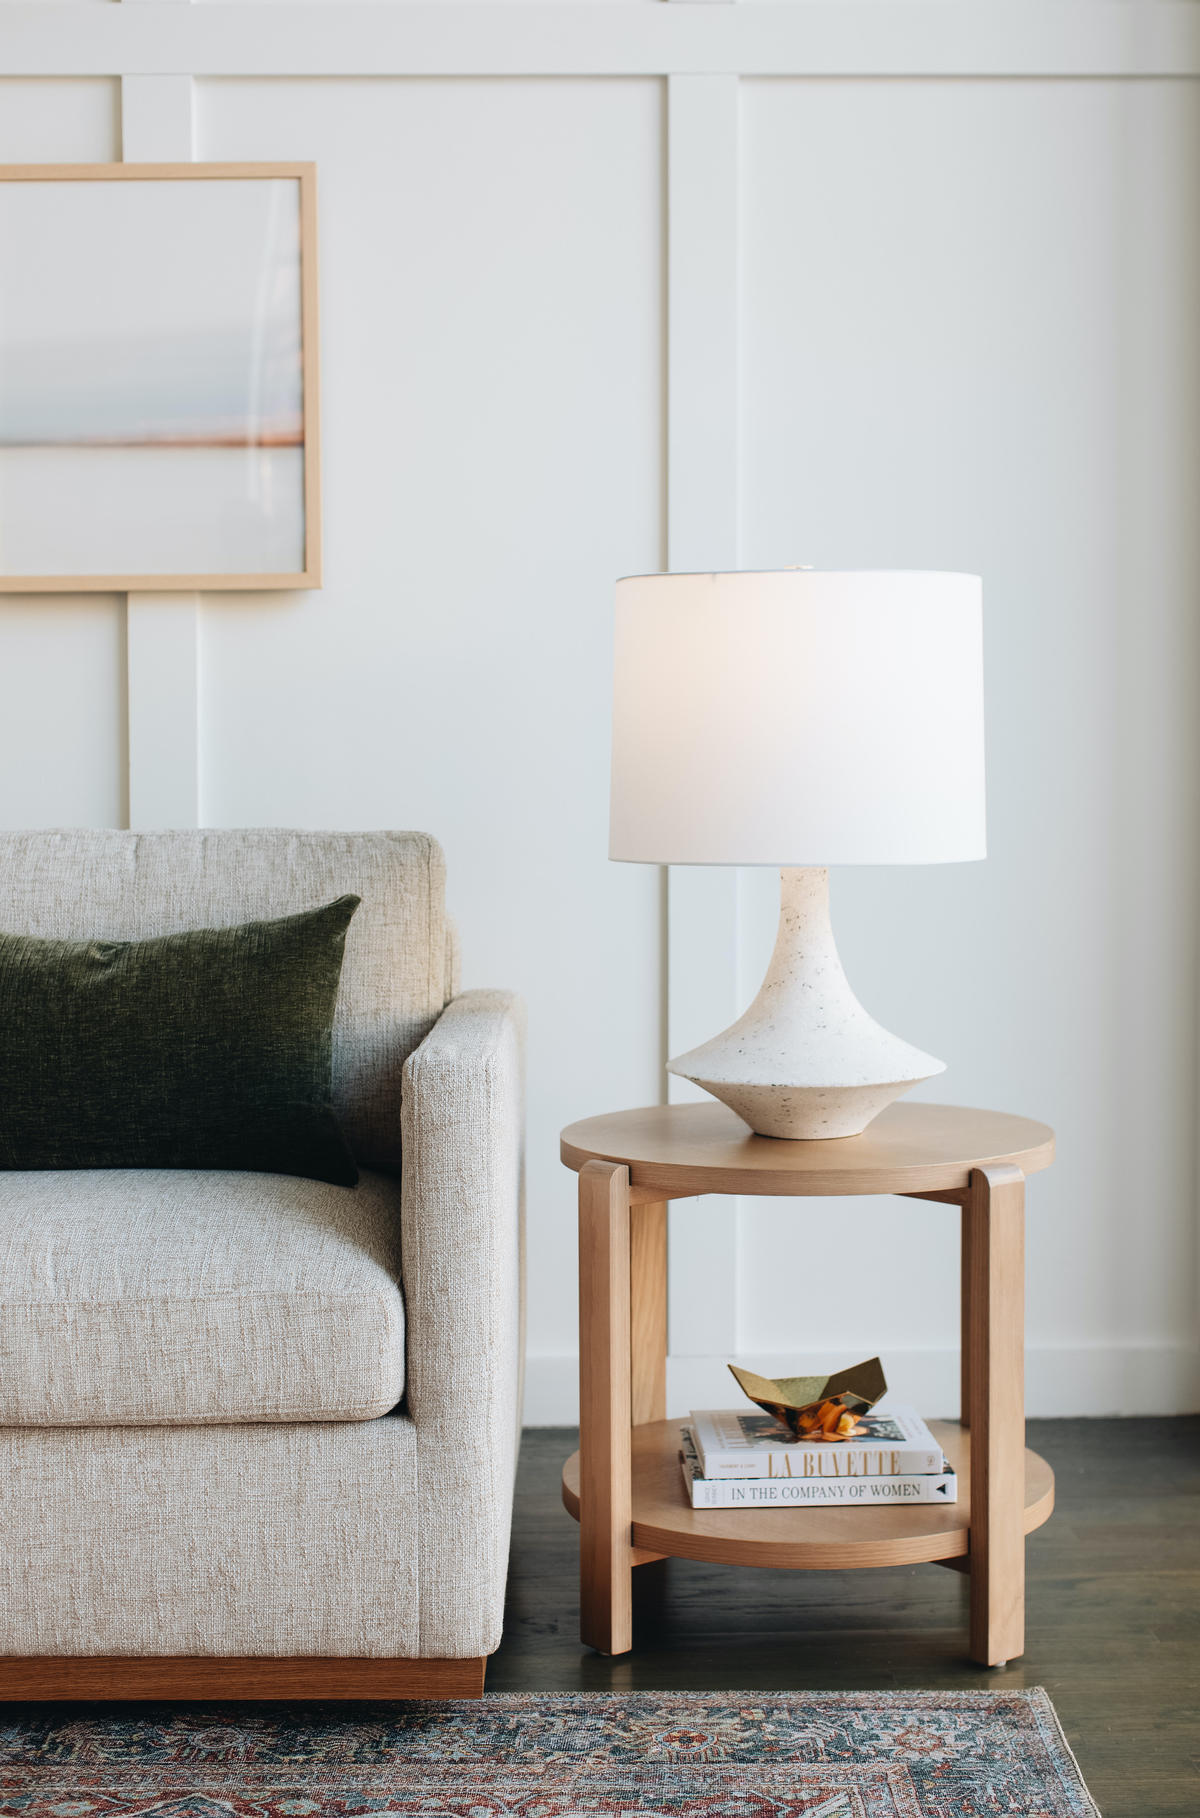 The Emery lamp from Interior Define